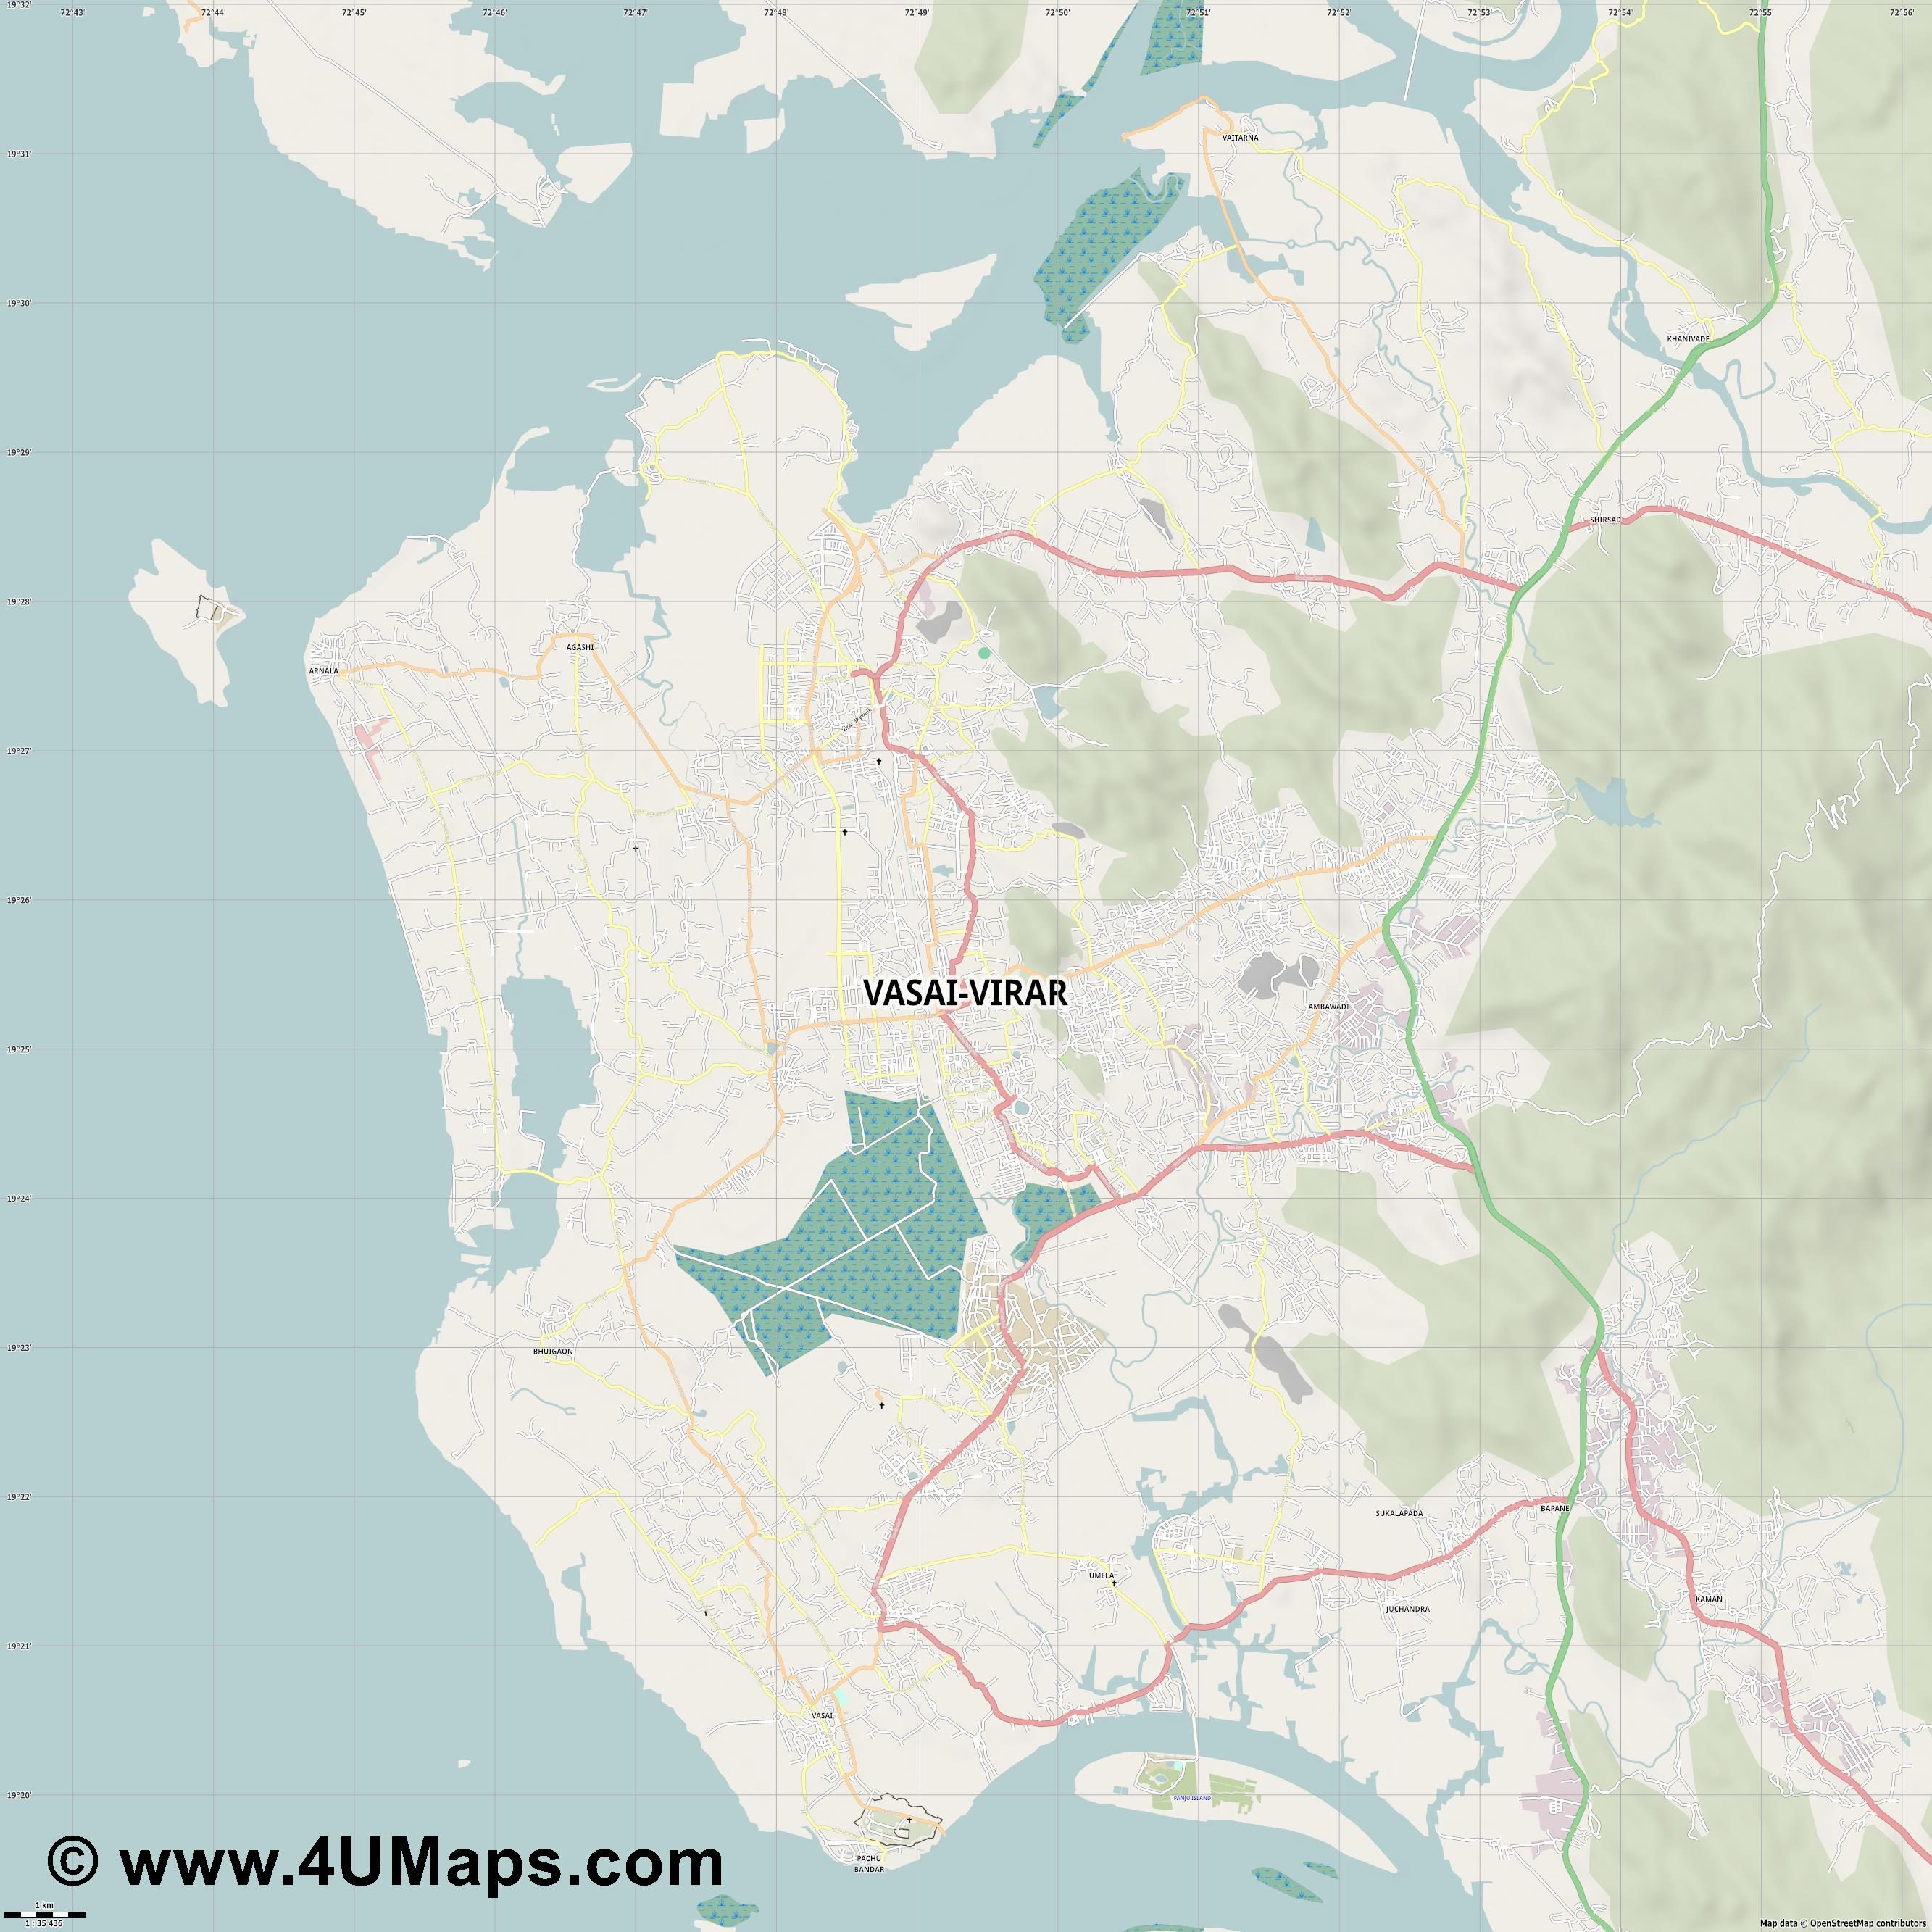 Vasai Virar  jpg high detail, large area preview vector city map